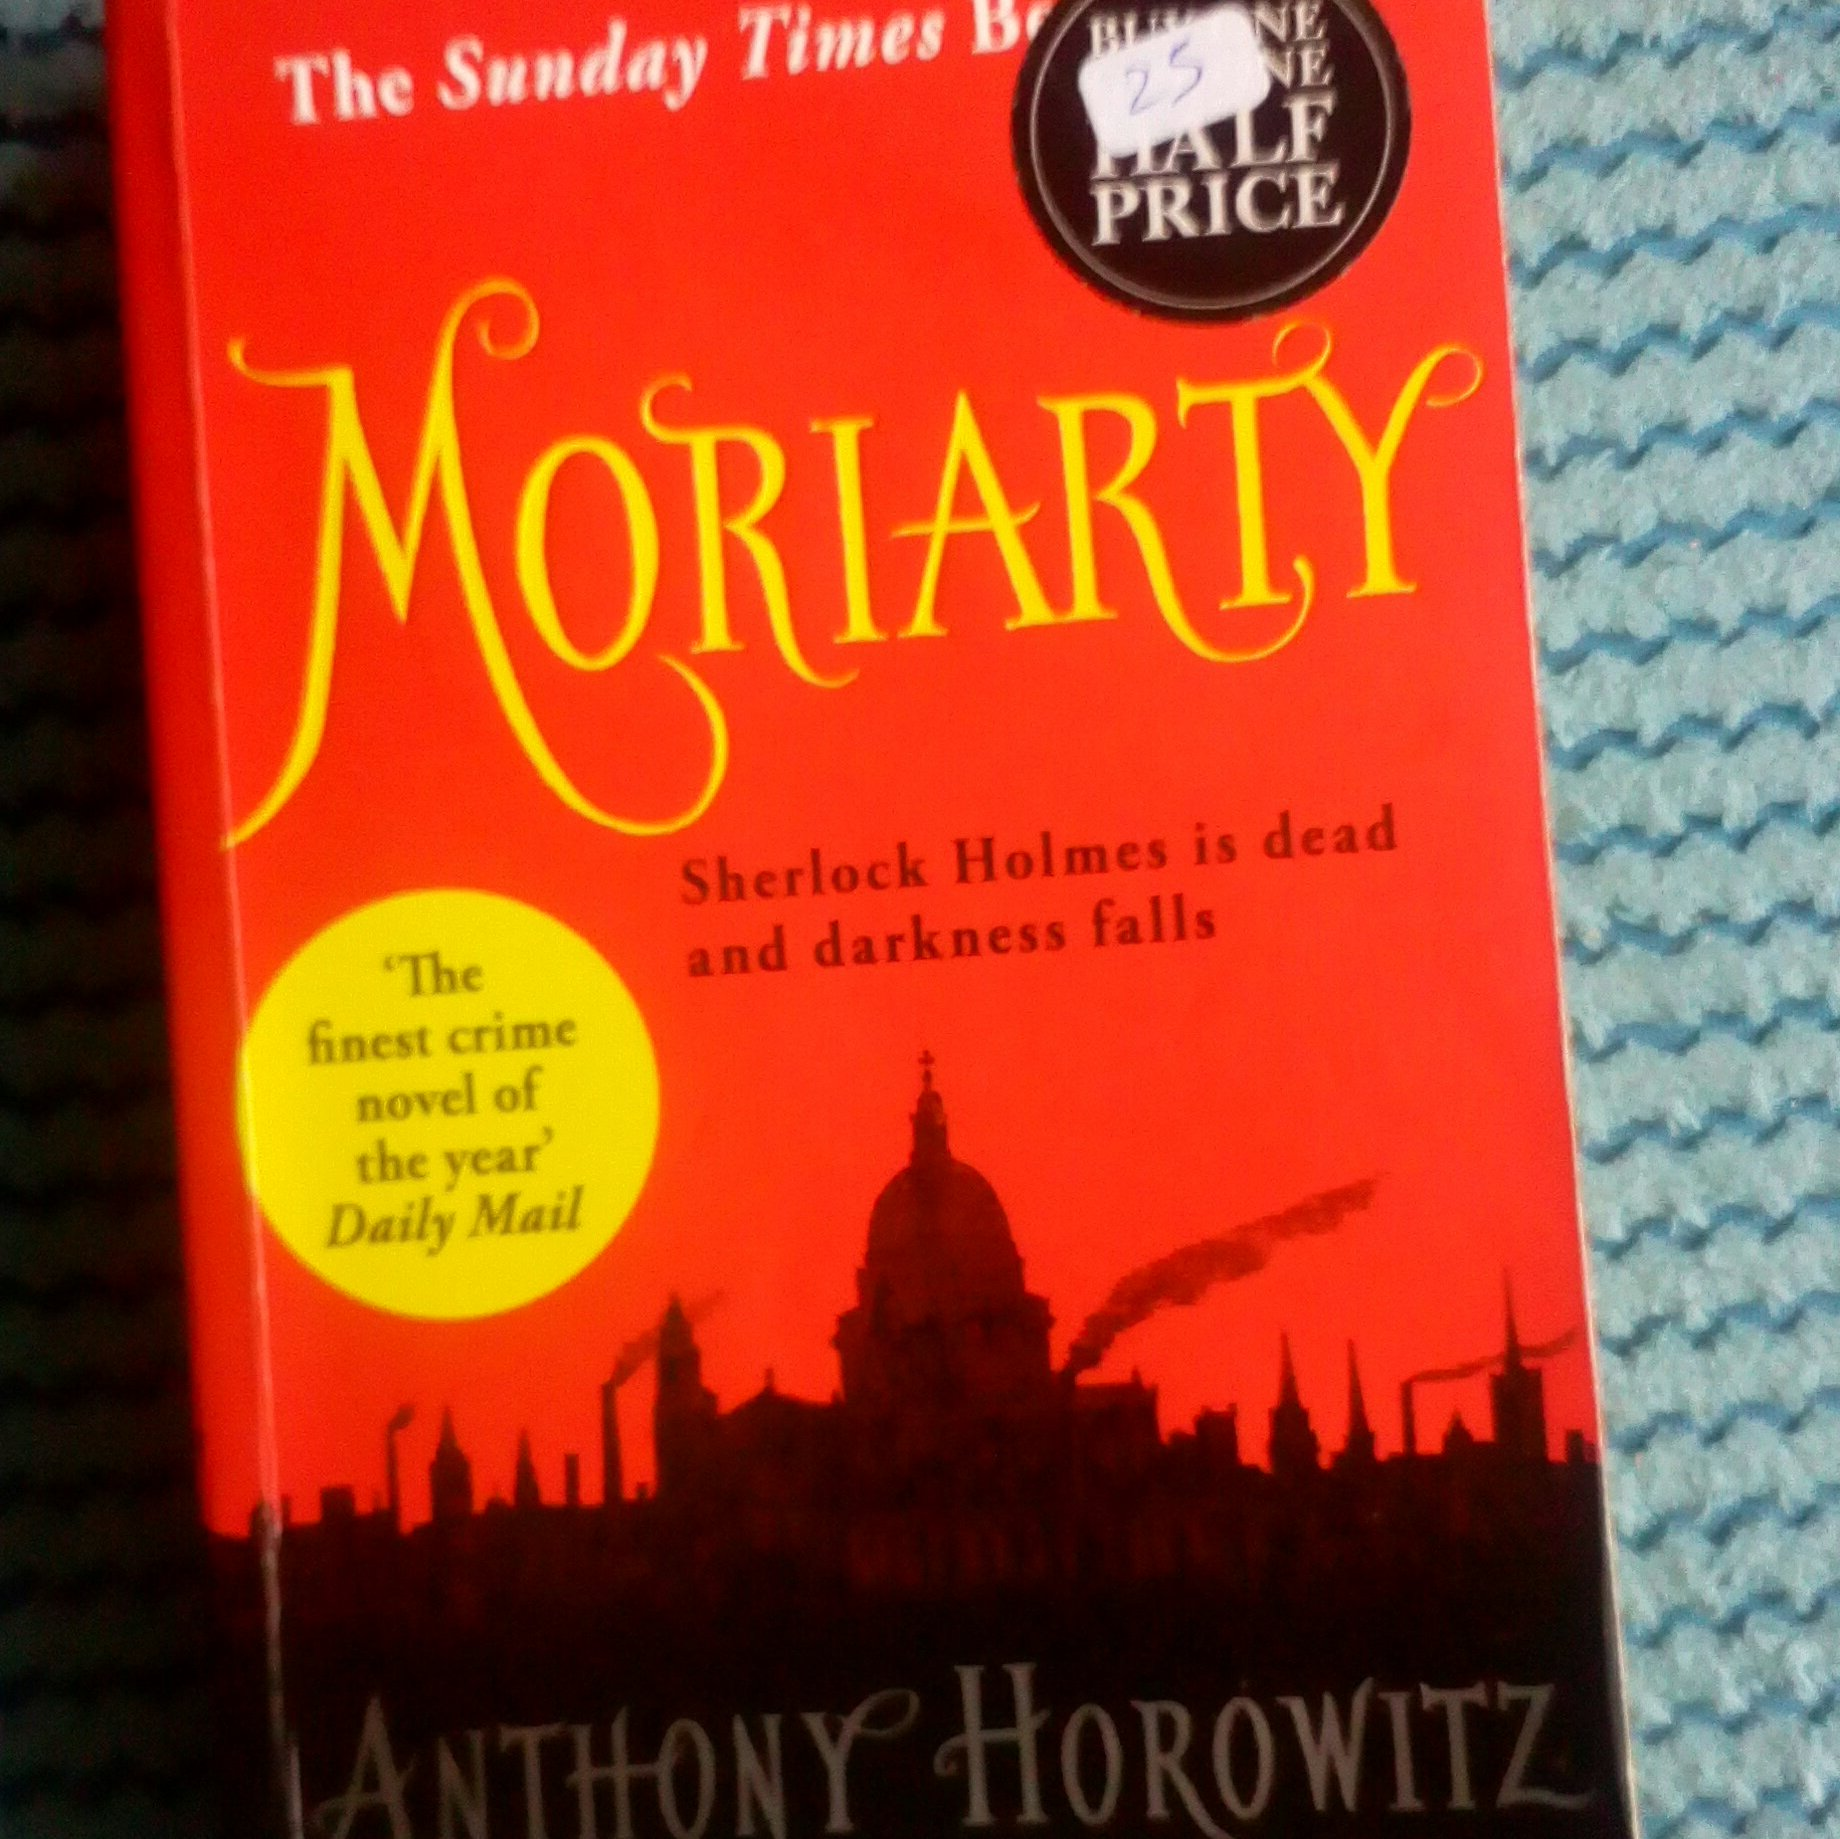 Book Review – Moriarty